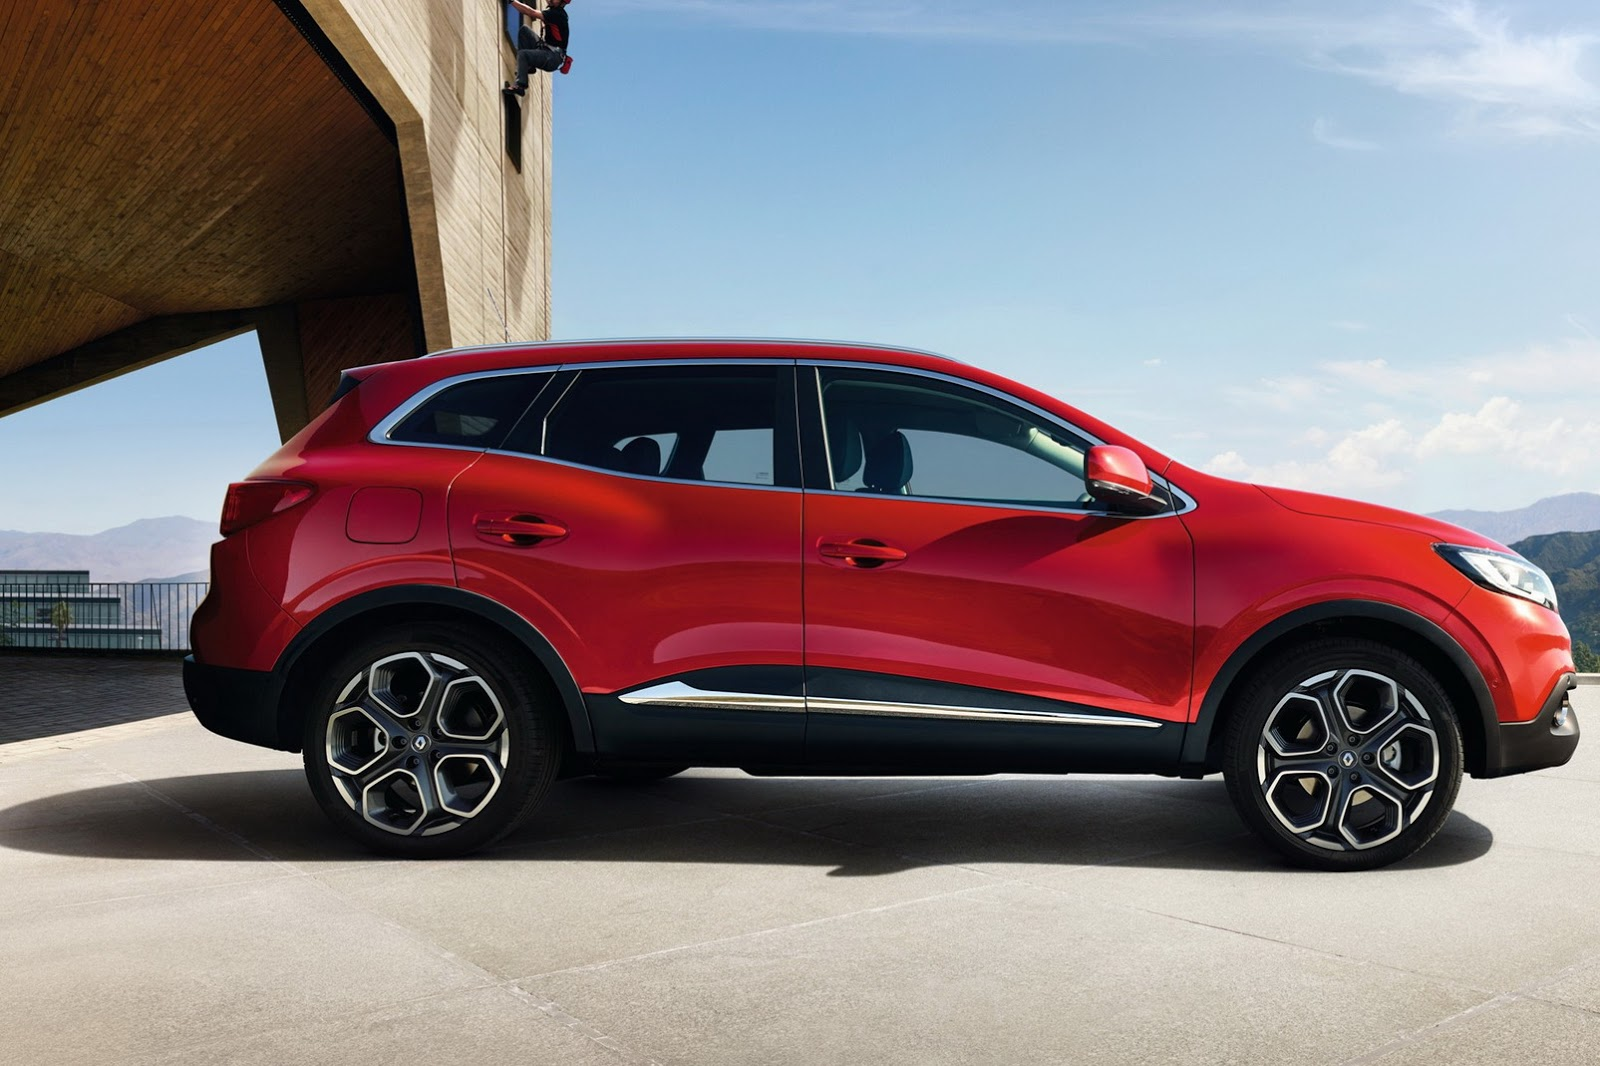 2014 Volvo Xc60 New Car Review additionally Volvo V60 Cross Country Makes Word Debut At 2014 La Show Live Photos 89122 also Renault Kadjar Yan 2 in addition 2725127 Renault 4l moreover Ford F 150 Raptor 2017. on 2015 volvo crossover xc60